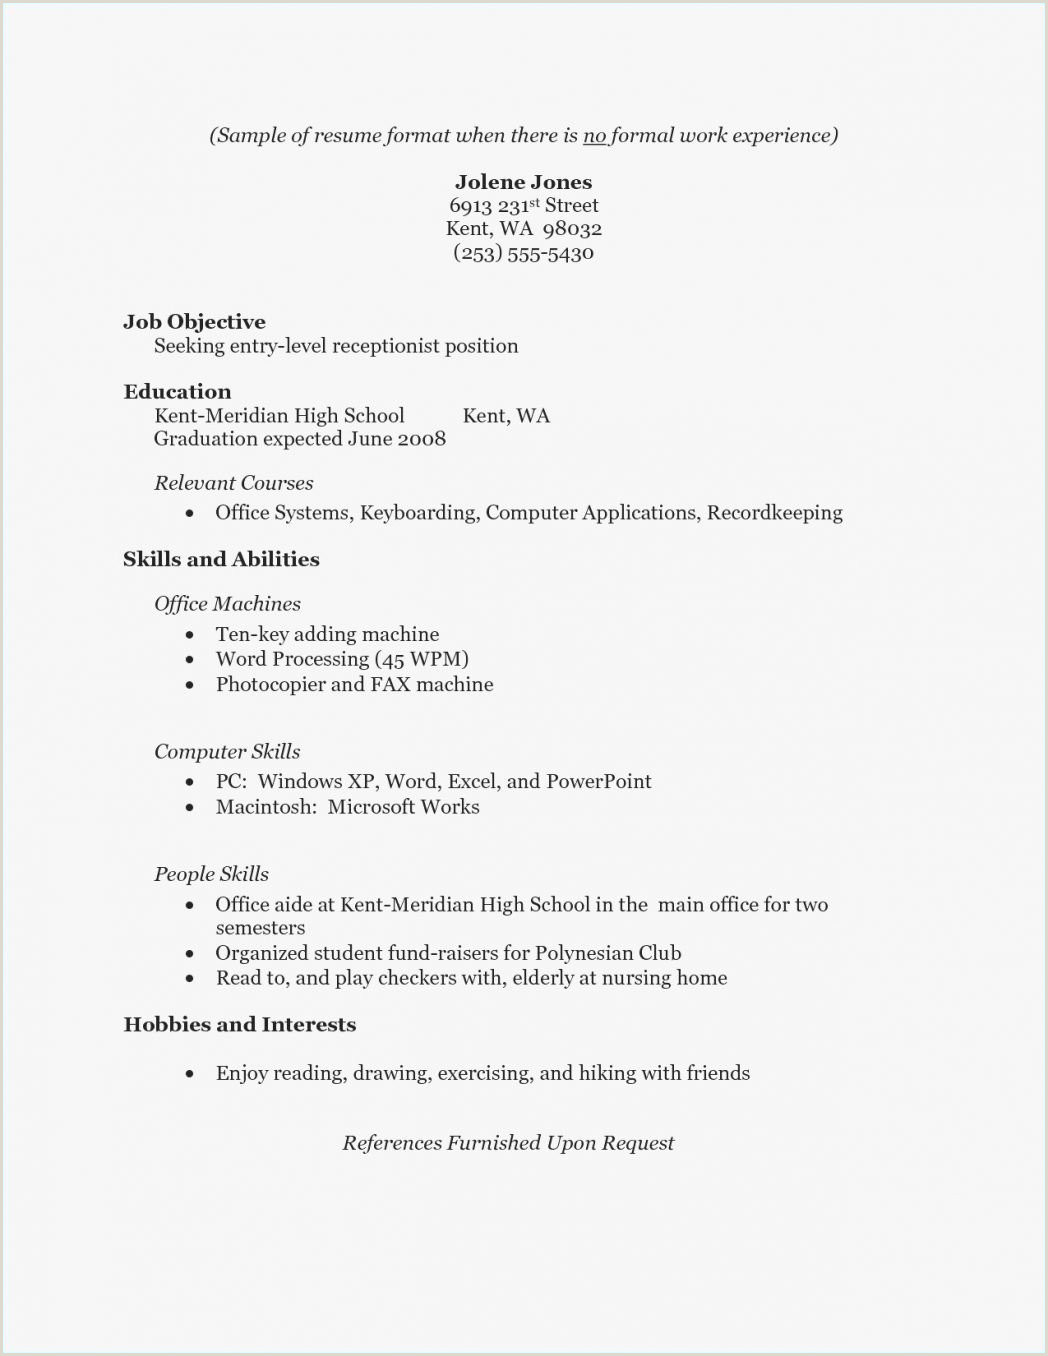 Cv Format For Job In Excel Resume For Receptionist With No Experience Unique Nanny